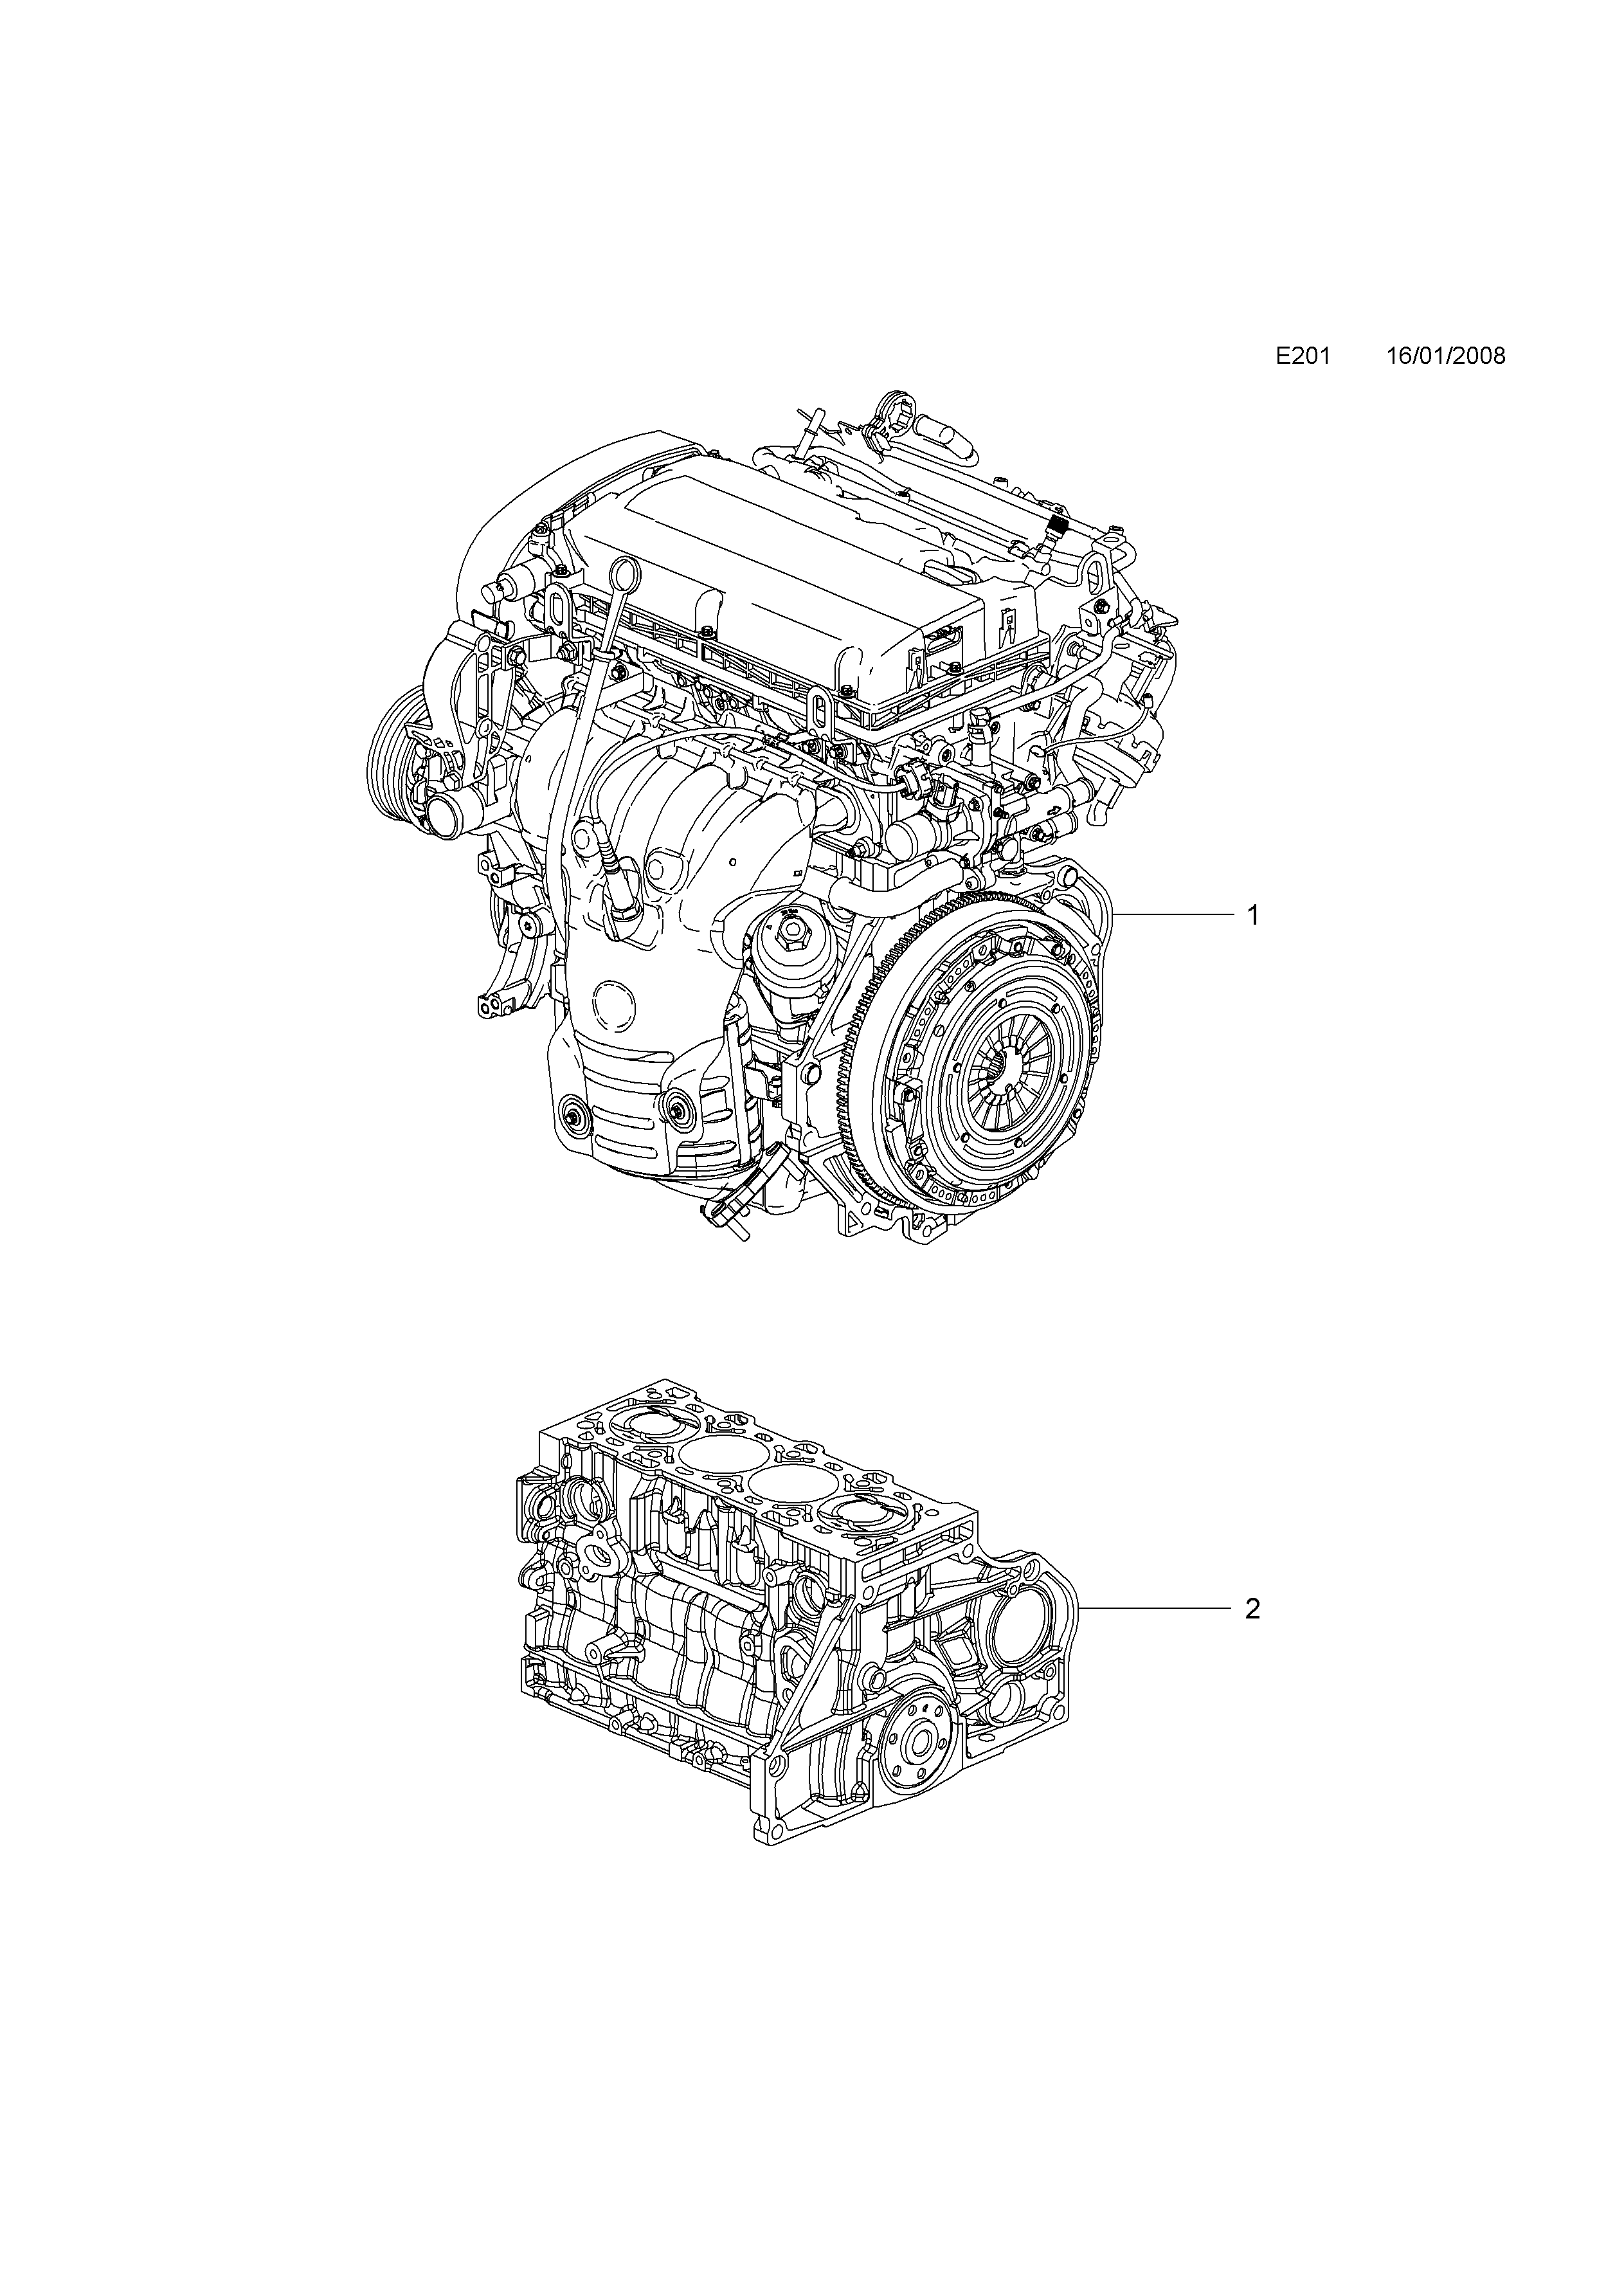 ENGINE ASSEMBLY OPEL INSIGNIA